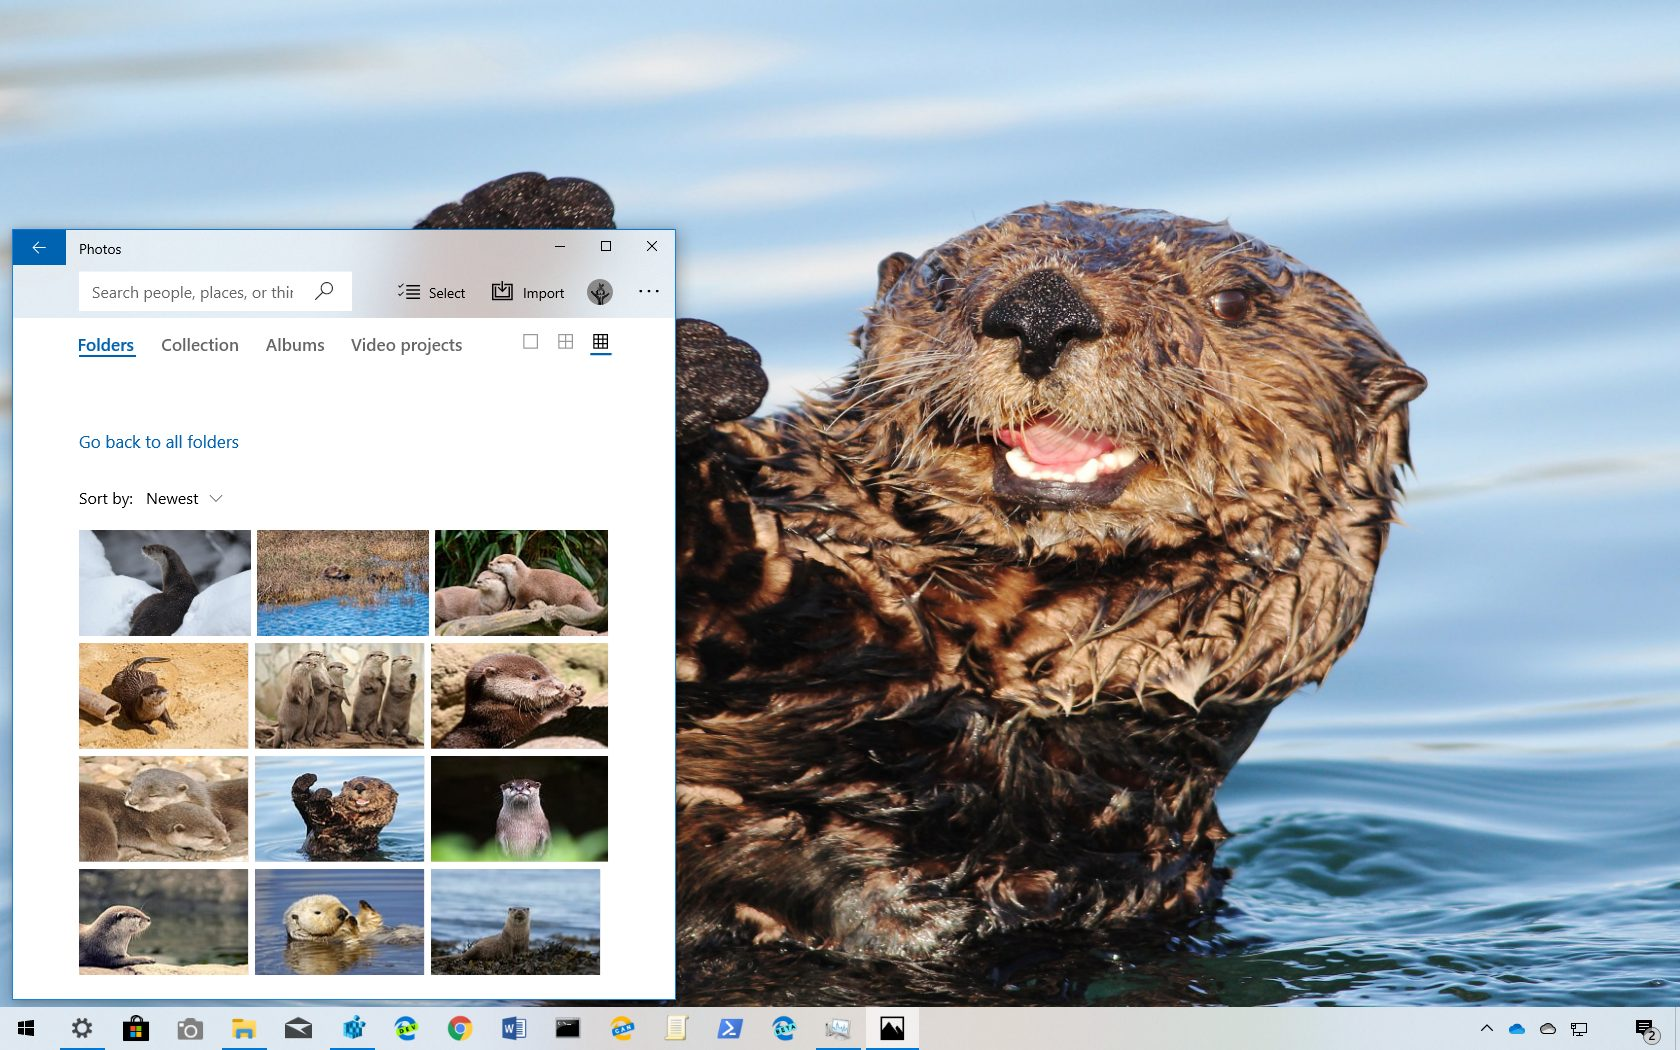 Otters theme for Windows 10